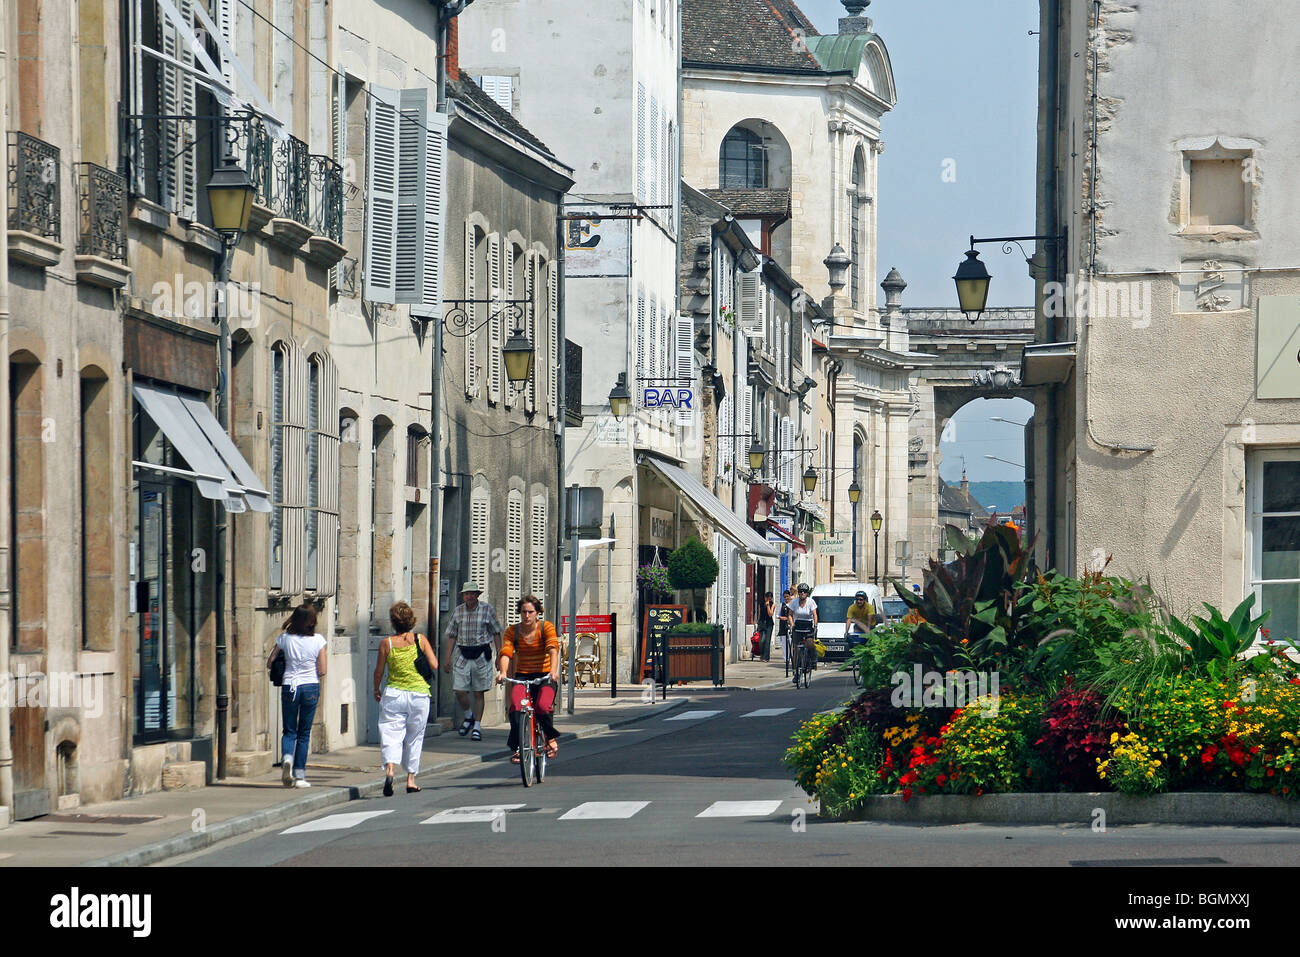 Street in the historical centre of Beaune, France - Stock Image